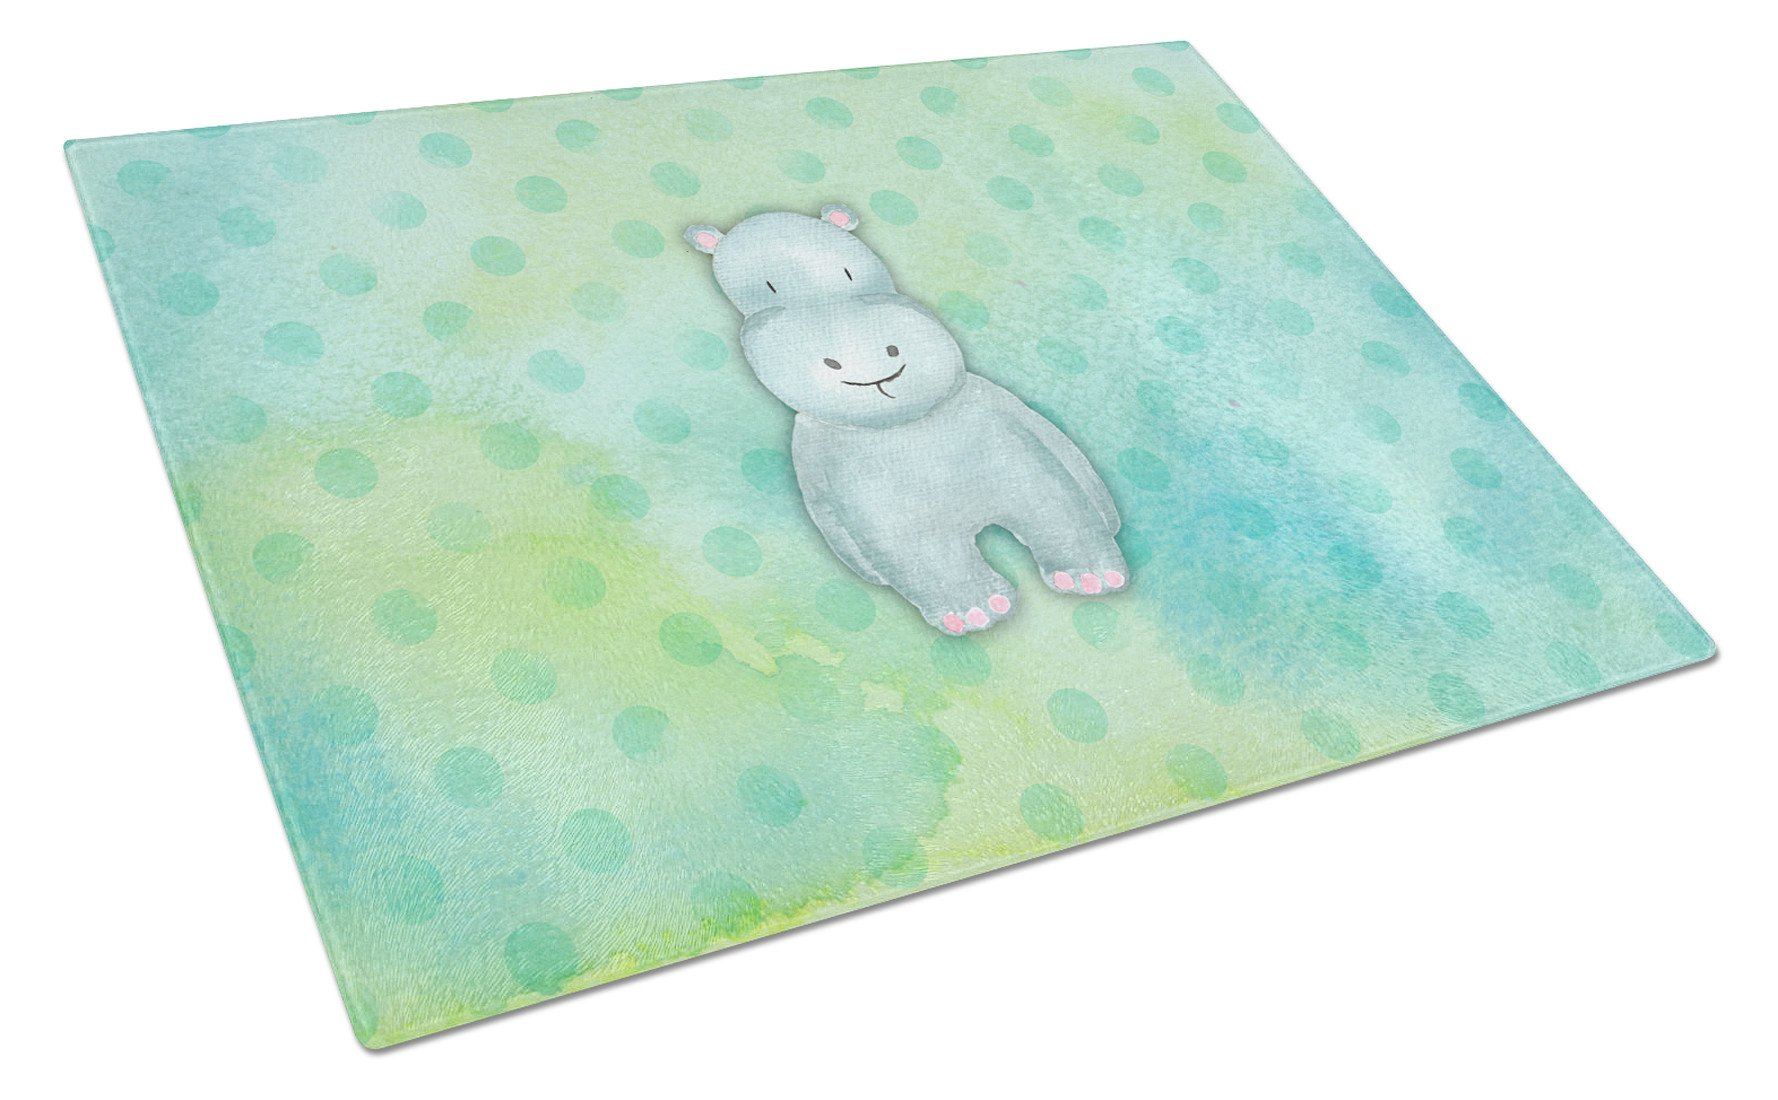 Polkadot Hippopotamus Watercolor Glass Cutting Board Large BB7389LCB by Caroline's Treasures